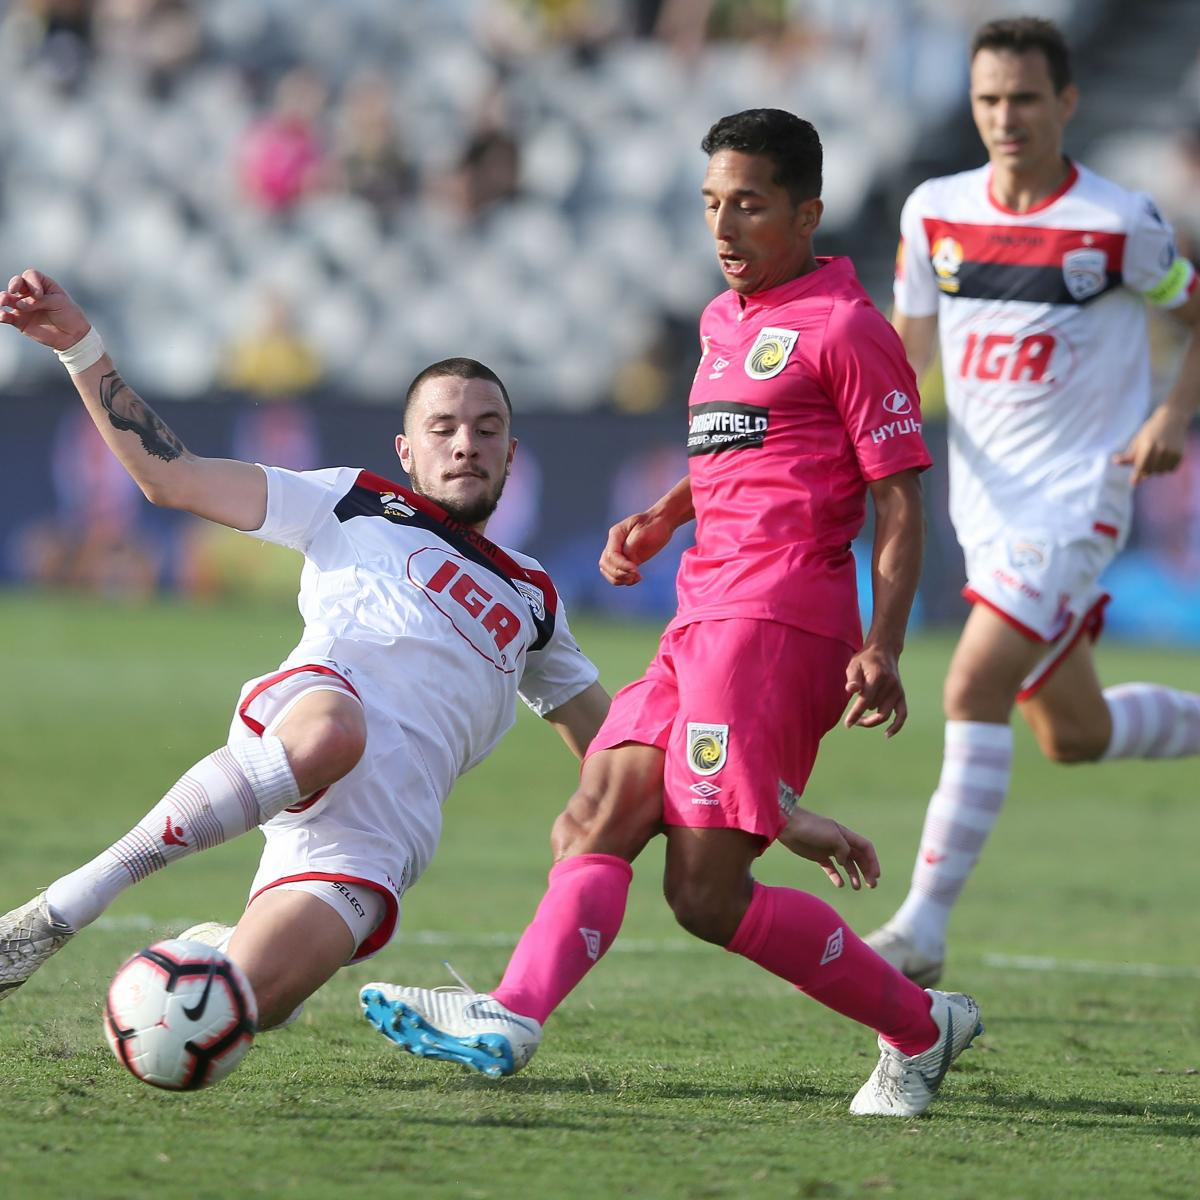 2018/19 A-League Round 4 Odds: Betting Preview, Trends, Analysis for Week